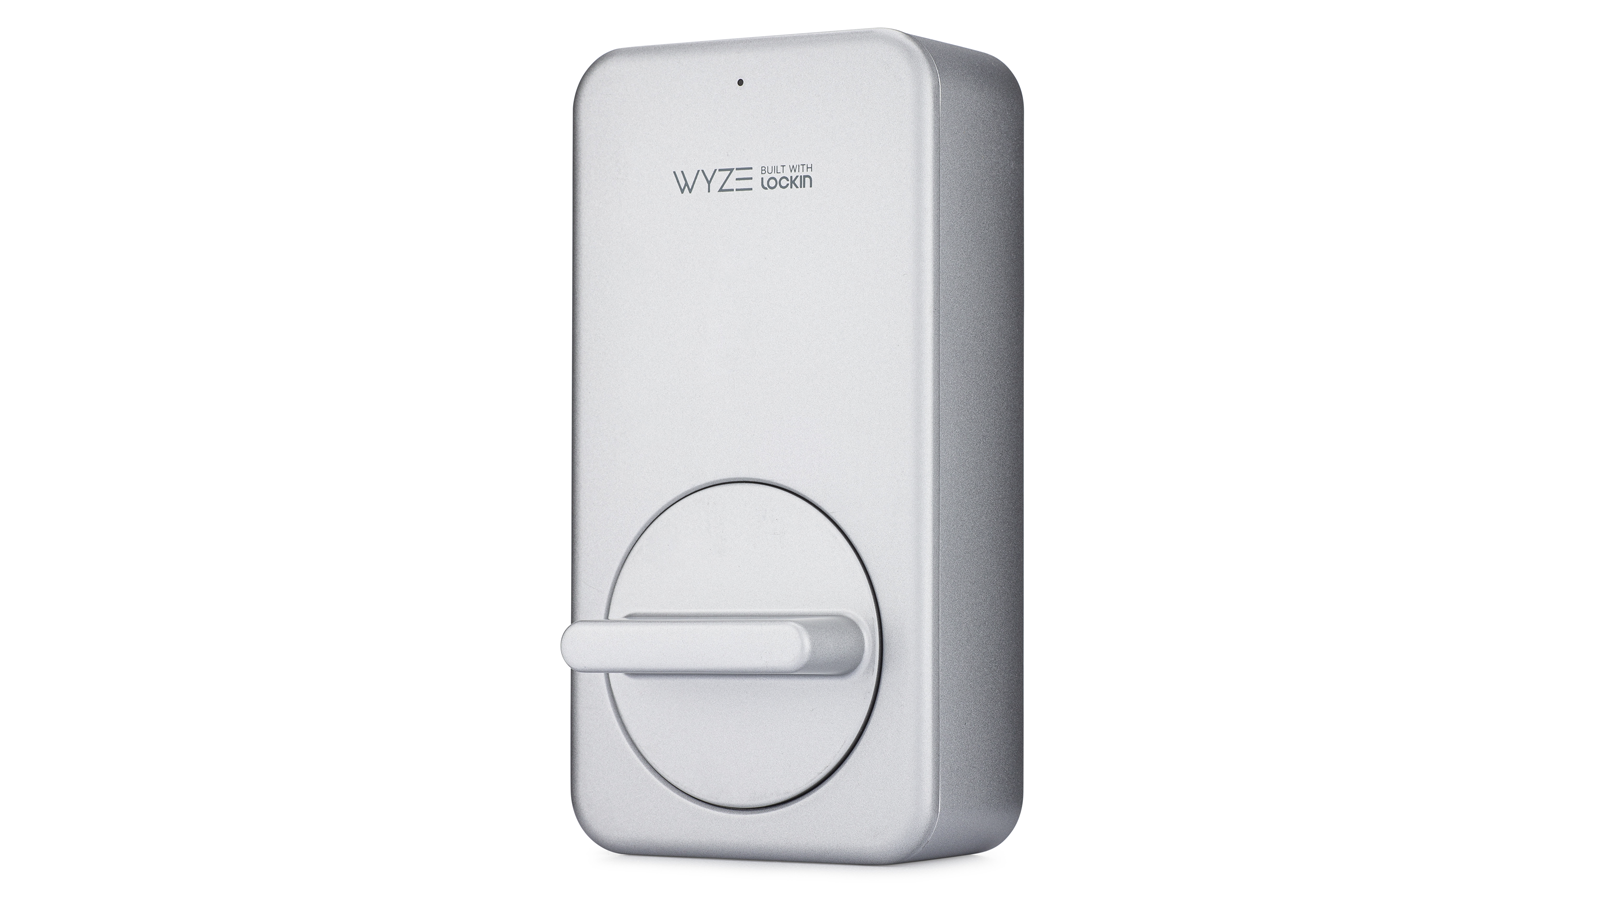 A photo of the Wyze smart lock.